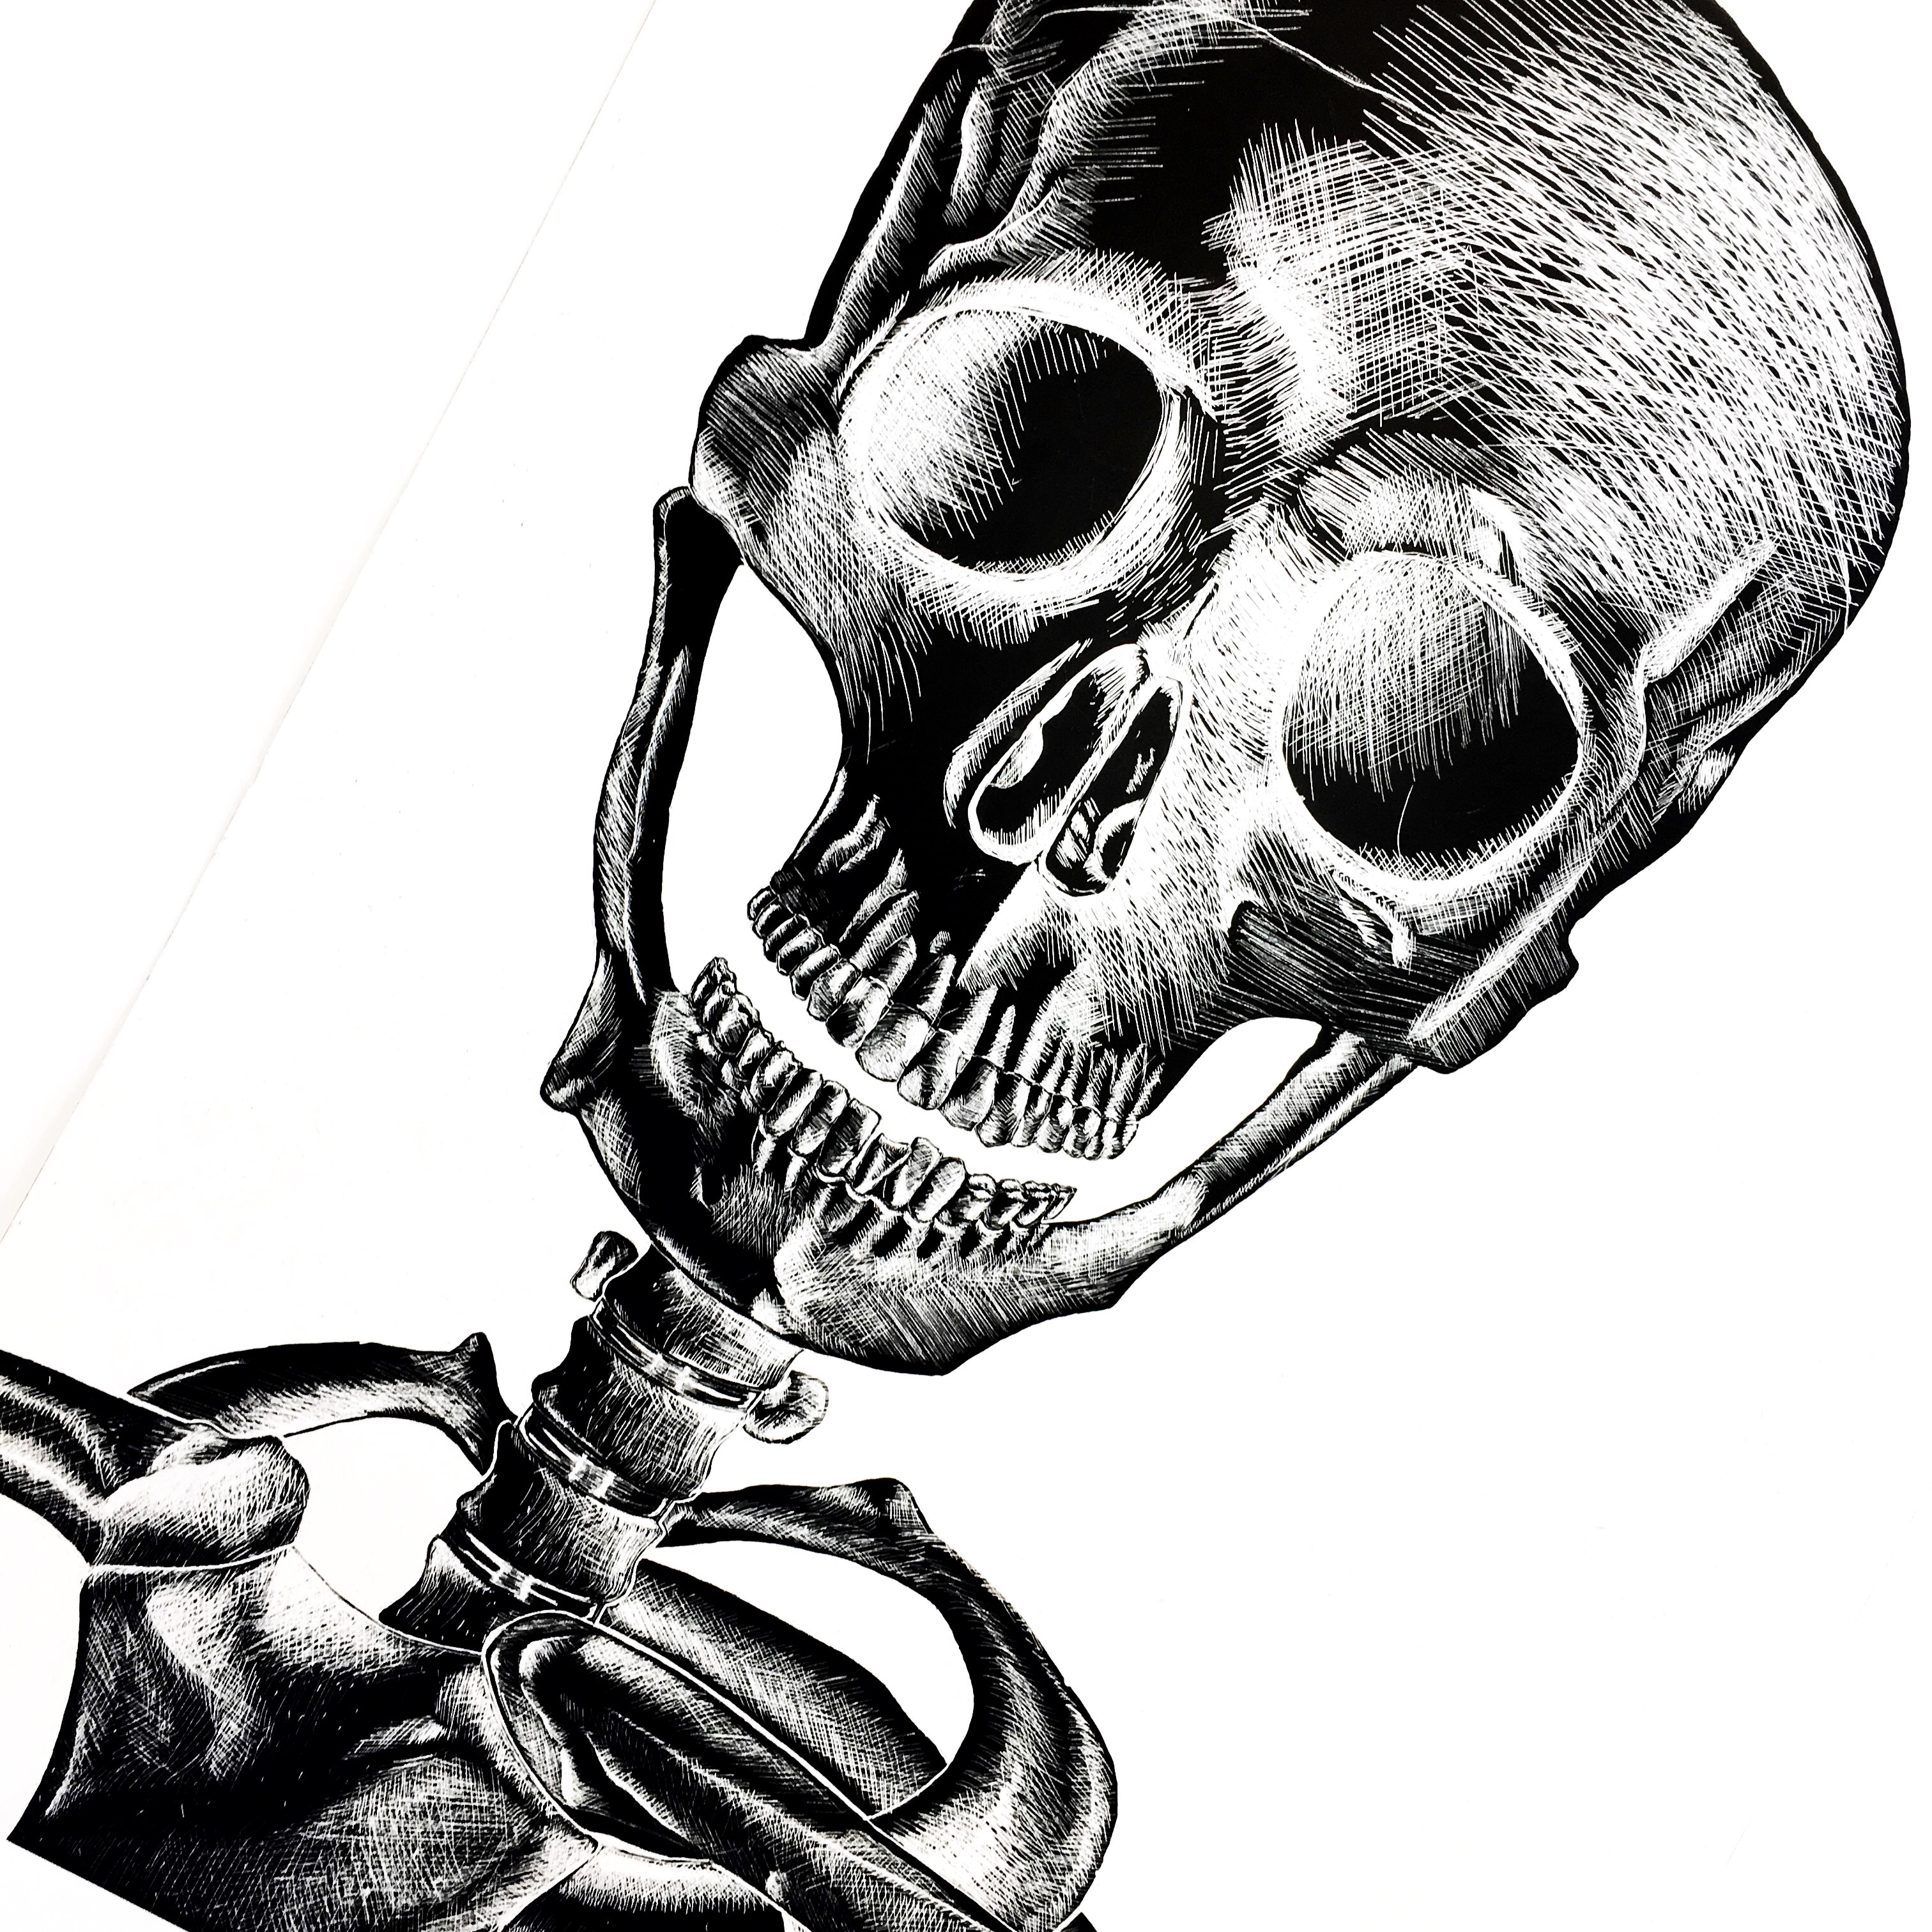 Scratchboard Skull Study: Adventures in Reverse-Drawing